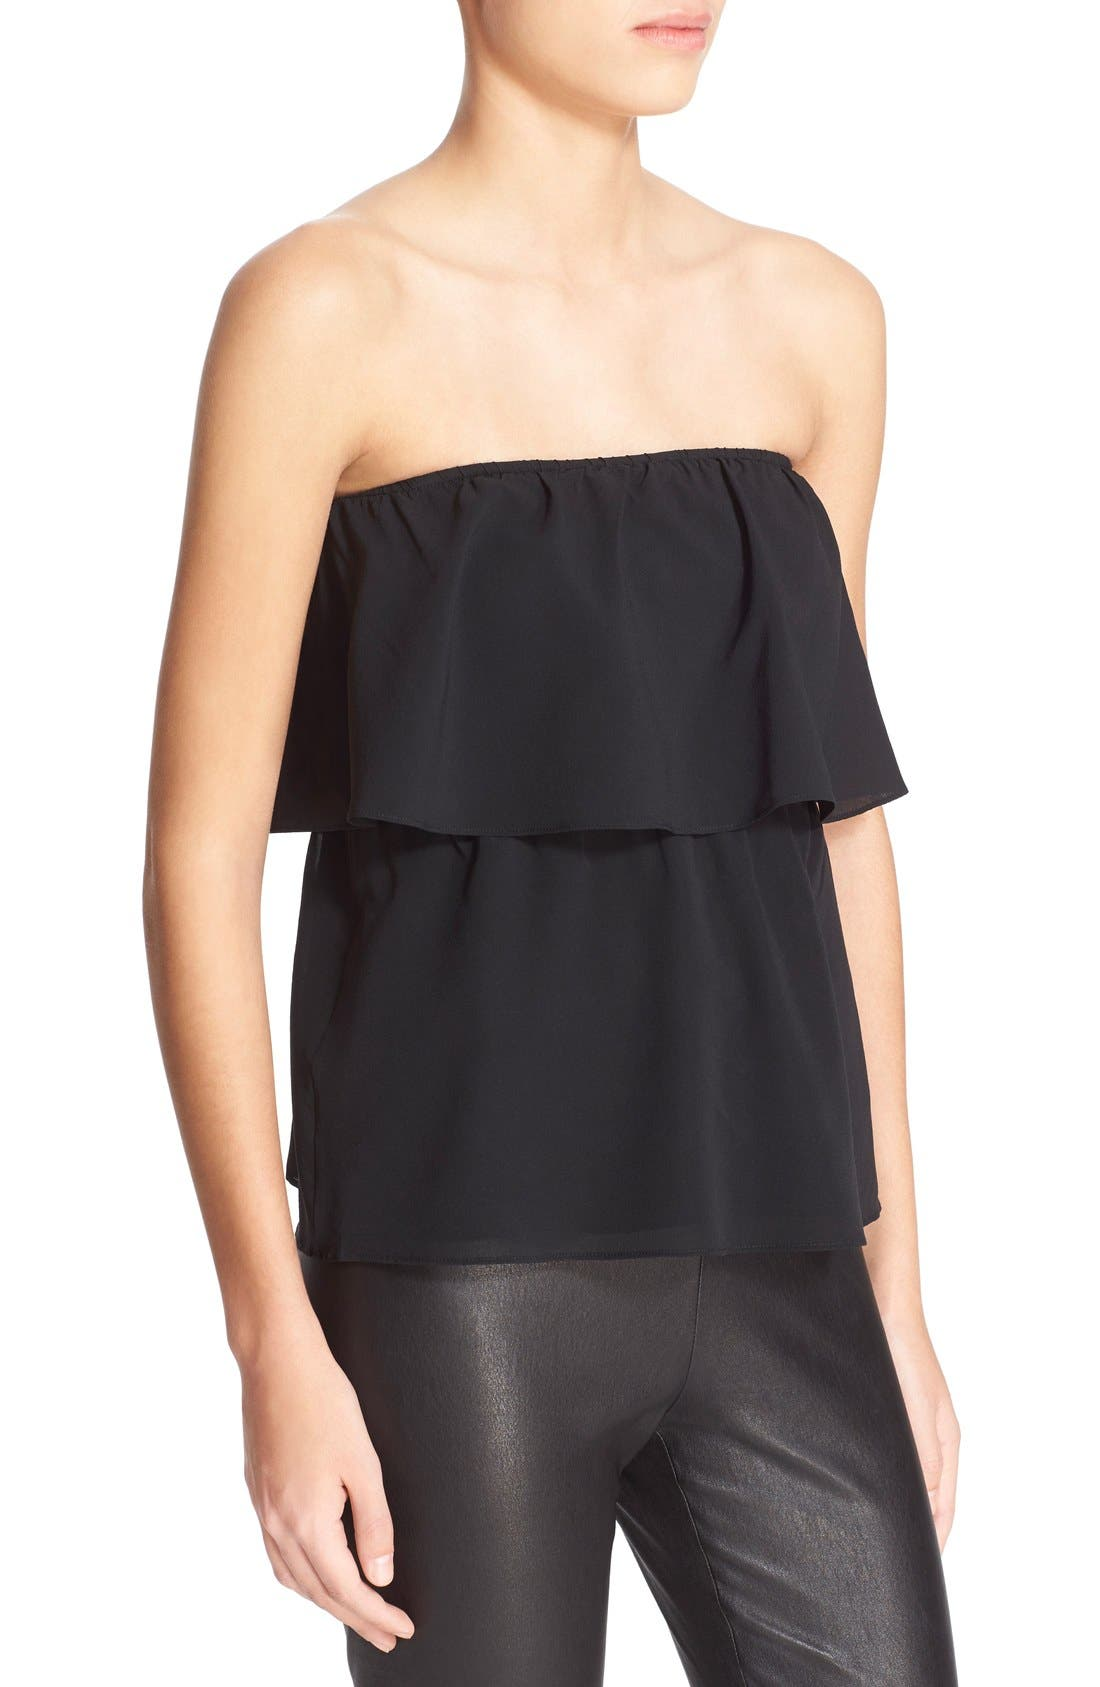 ALICE + OLIVIA,                             'Nadine' Strapless Ruffle Top,                             Alternate thumbnail 3, color,                             001